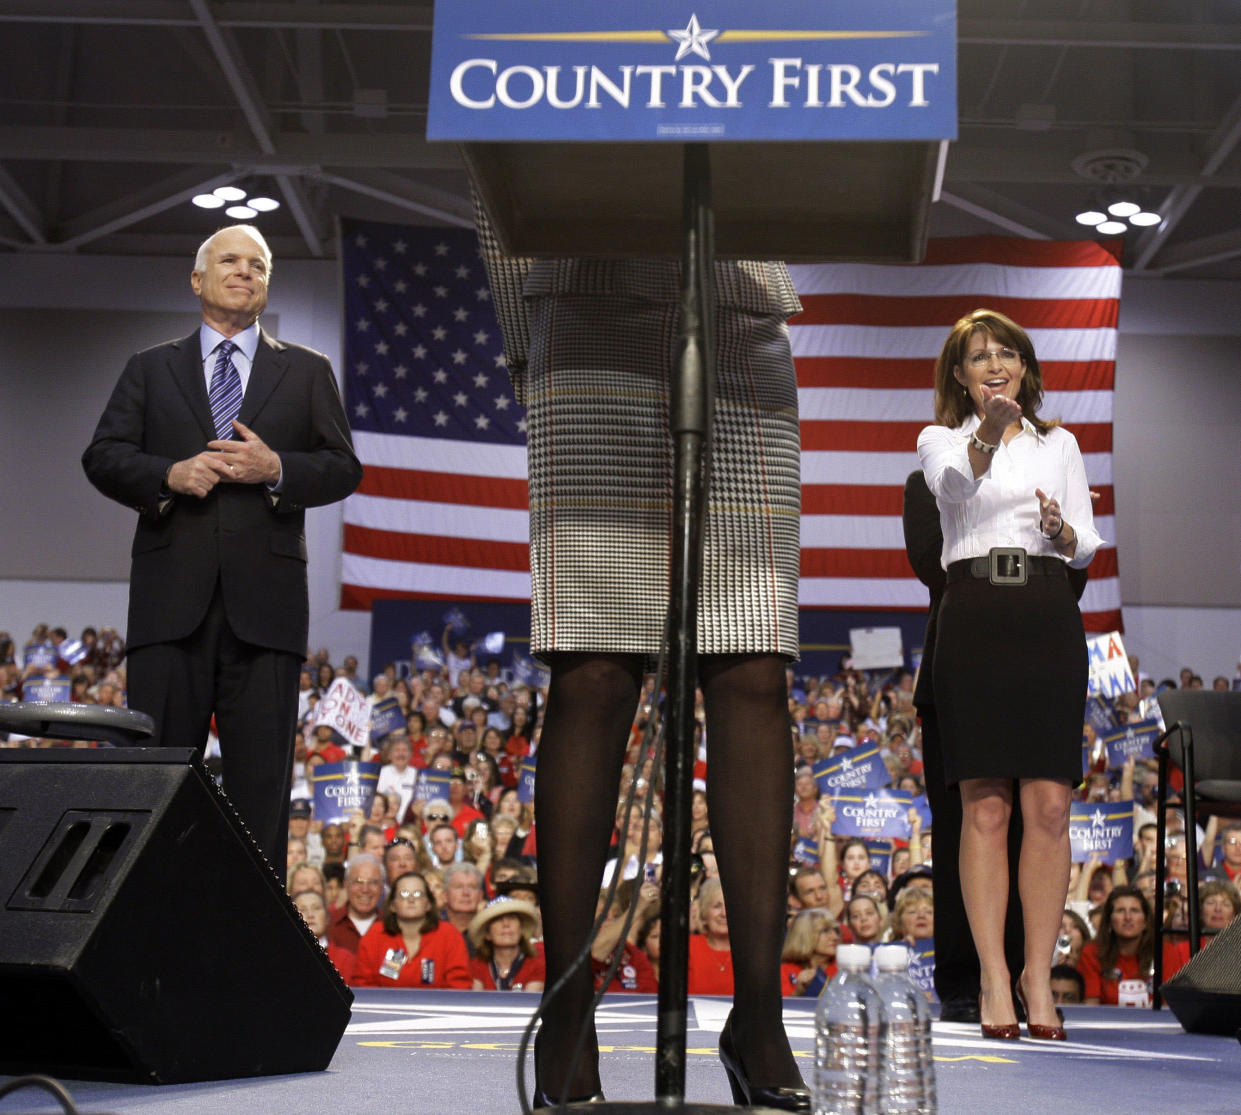 Sen. John McCain, R-Ariz., left, and his vice presidential running mate, Alaska Gov. Sarah Palin, listen as Cindy McCain, center, introduces Palin at a rally in Virginia Beach, Va., in October 2008. (Photo: Carolyn Kaster/AP)